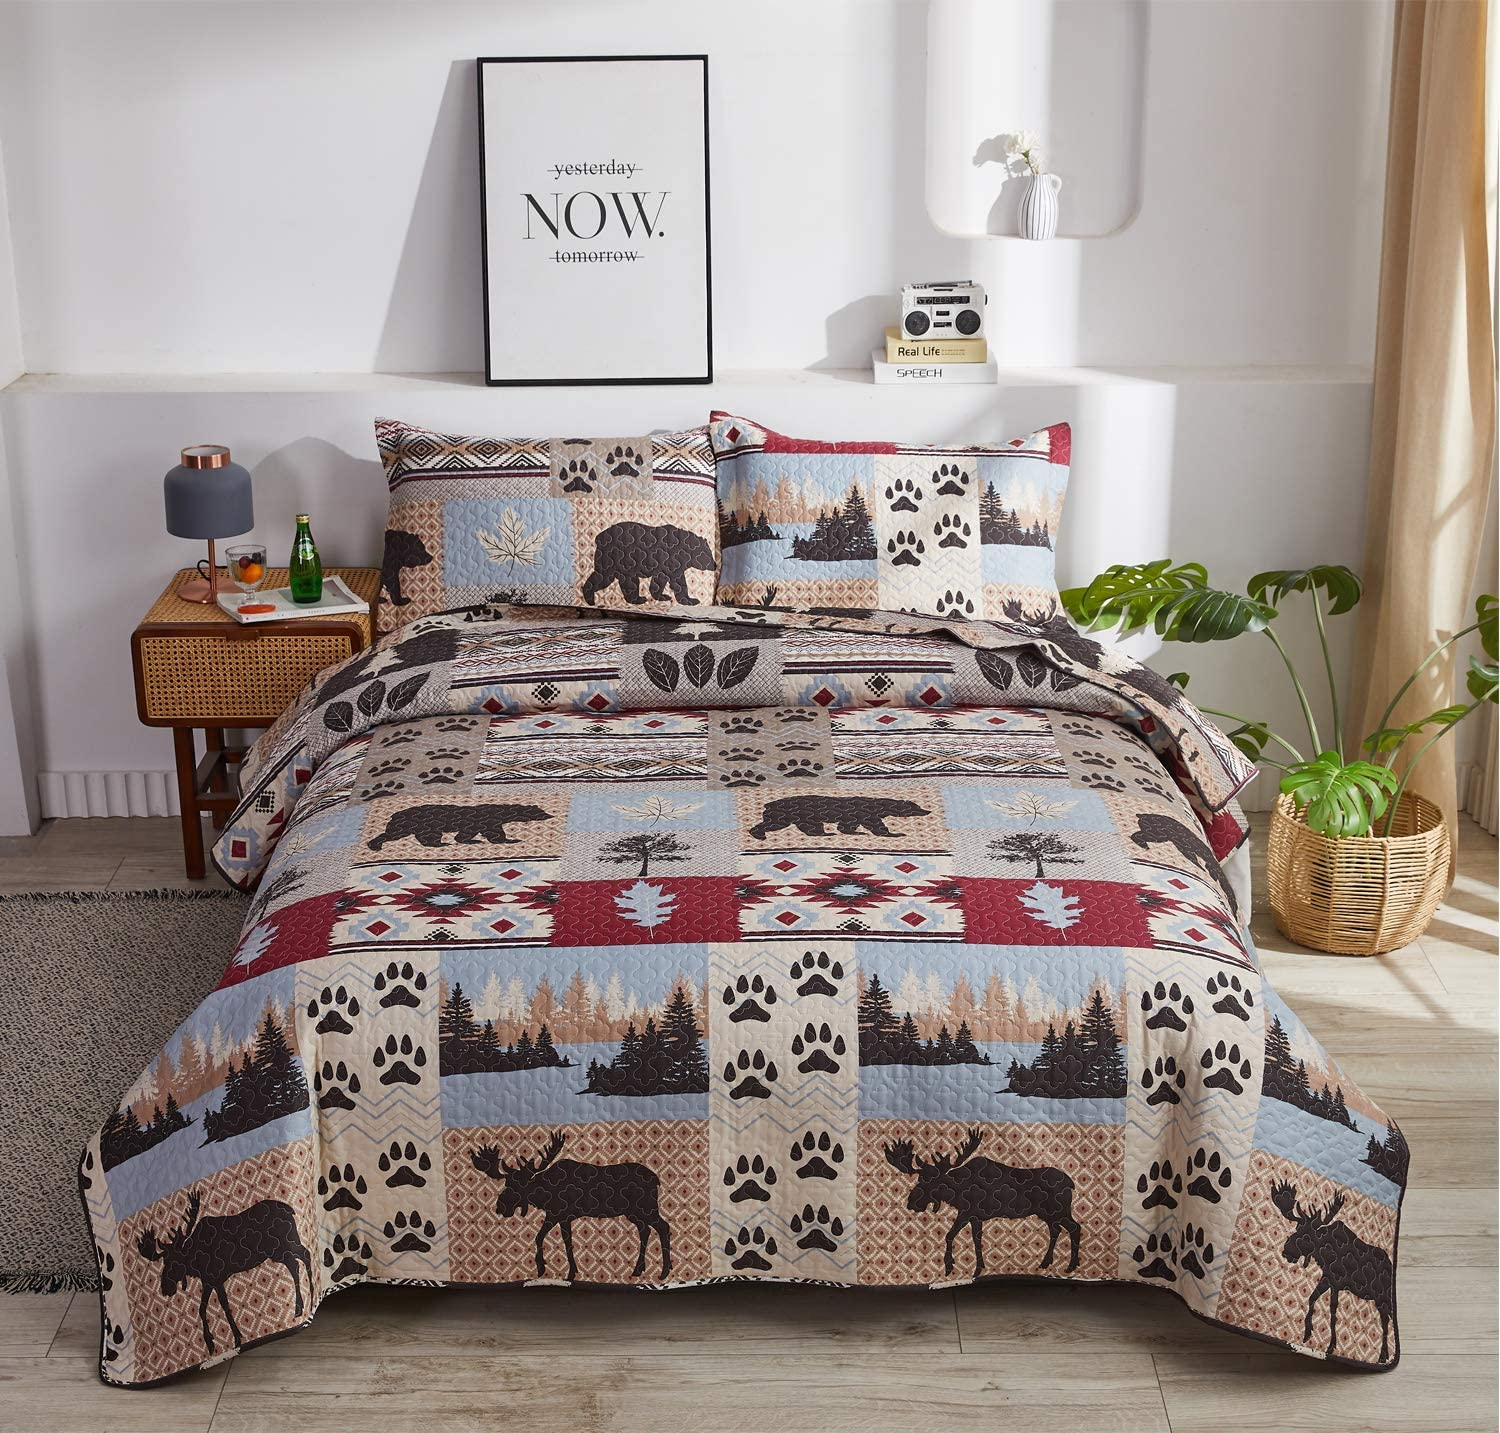 Amazon Com Lodge Bedding Set Full Queen Size Rustic Cabin Quilt Set Pine Tree Moose Bear Bedspread Coverlet With Sham Soft Reversible All Season Bed Set 1 Quilt 2 Pillow Shams Kitchen Dining